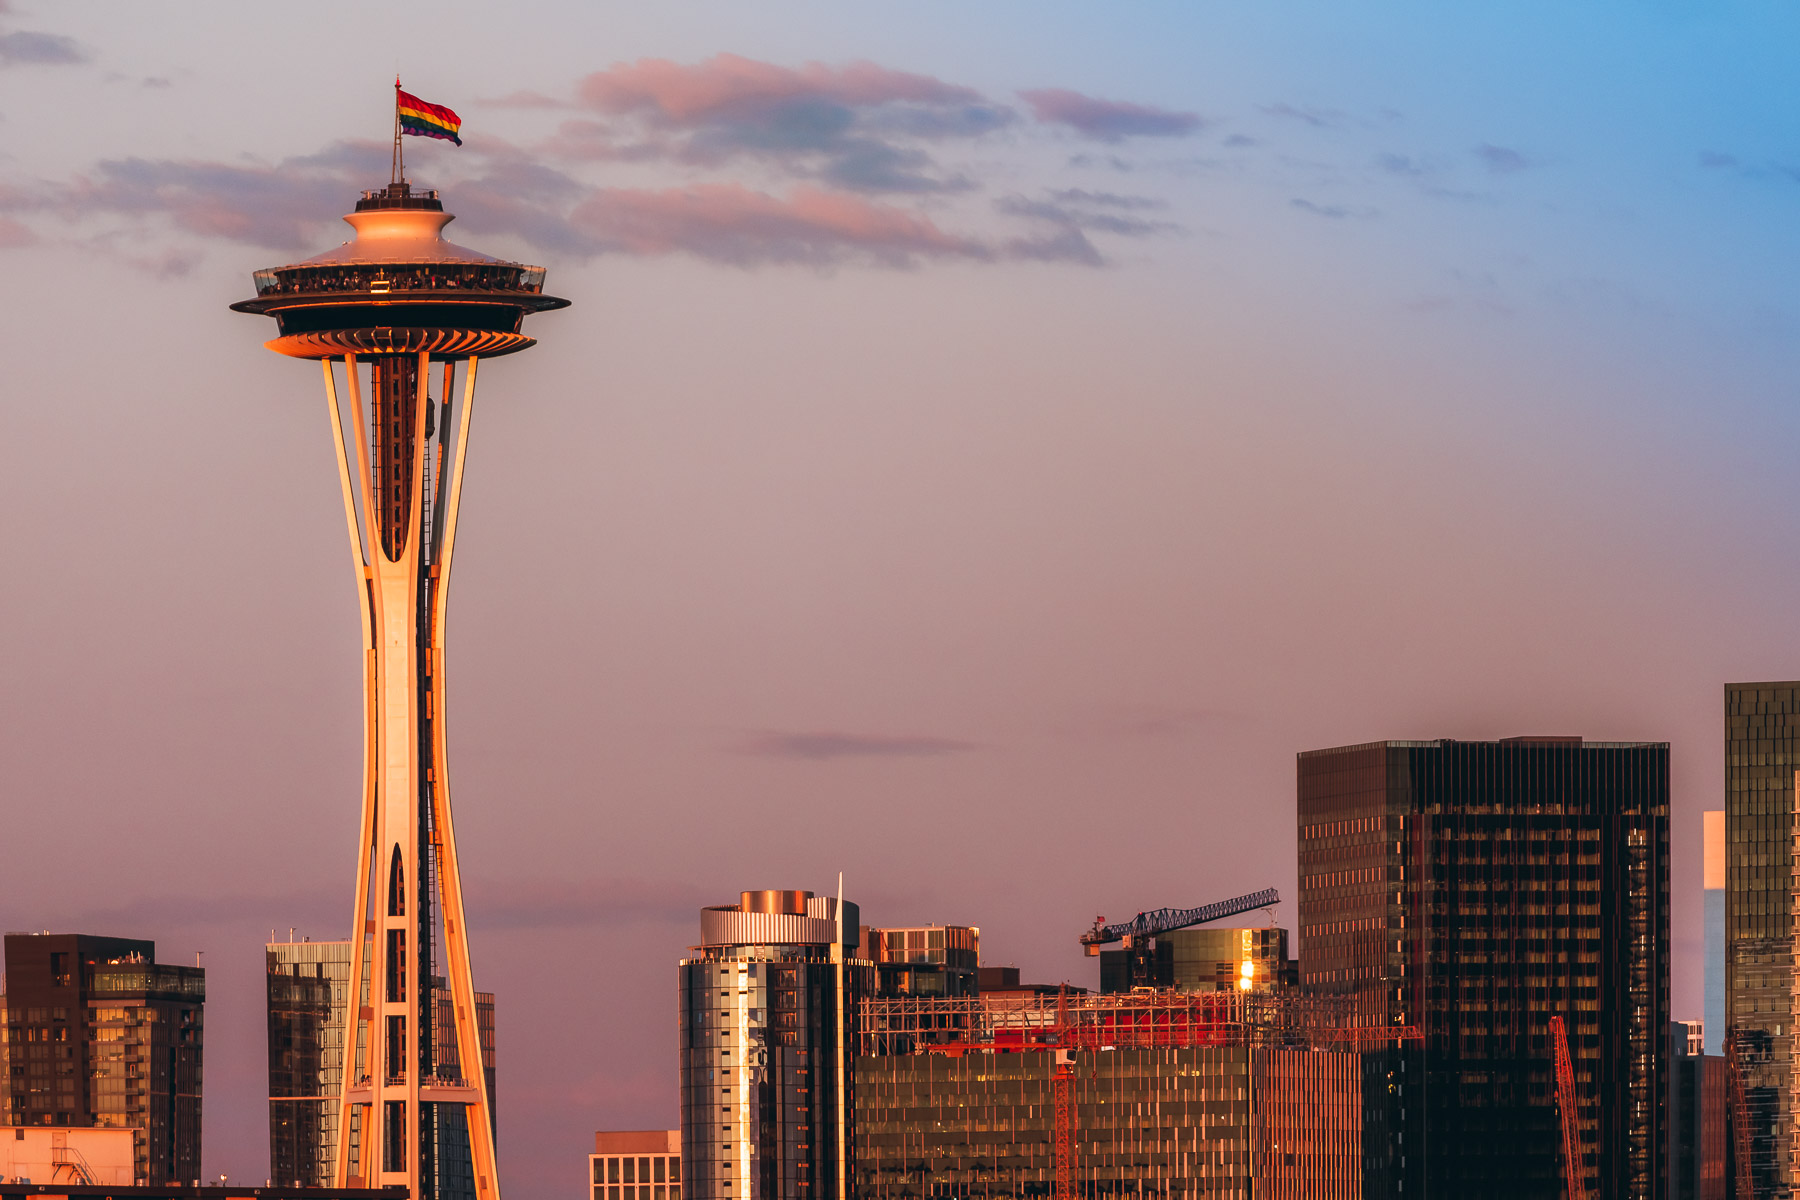 The evening sun lights the Seattle Space Needle, adorned with a LGBT Pride flag for Pride Month.